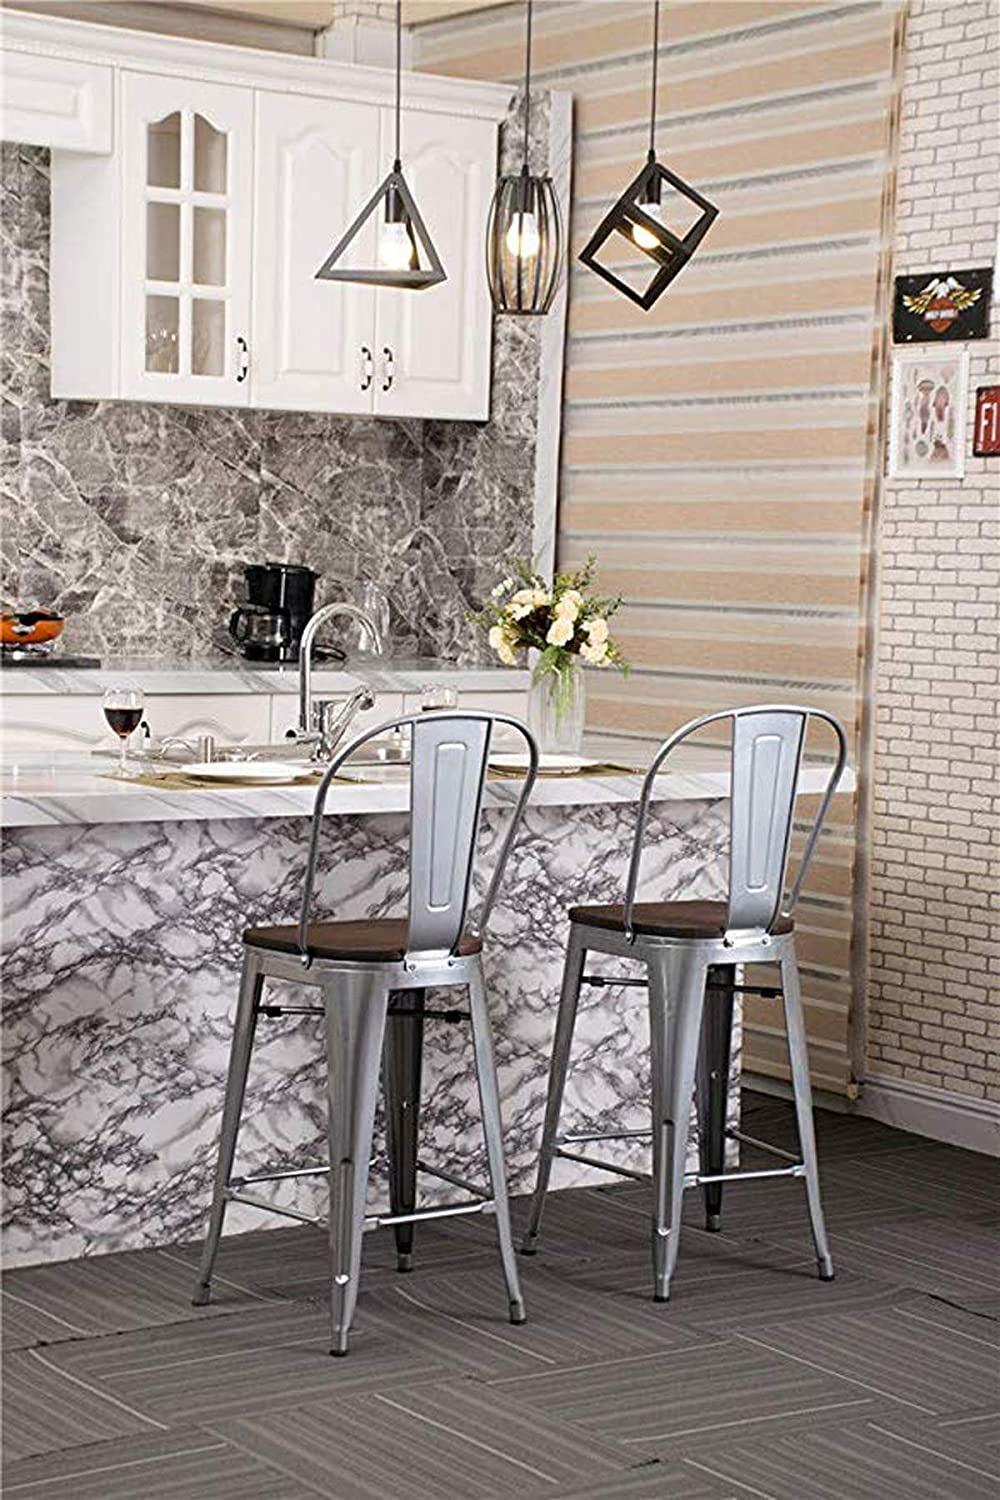 YongQiang Metal Barstools Set of 4 Indoor Outdoor Bar Stools High Back Dining Chair Counter Stool Cafe Side Chairs with Wooden Seat 24 Silver